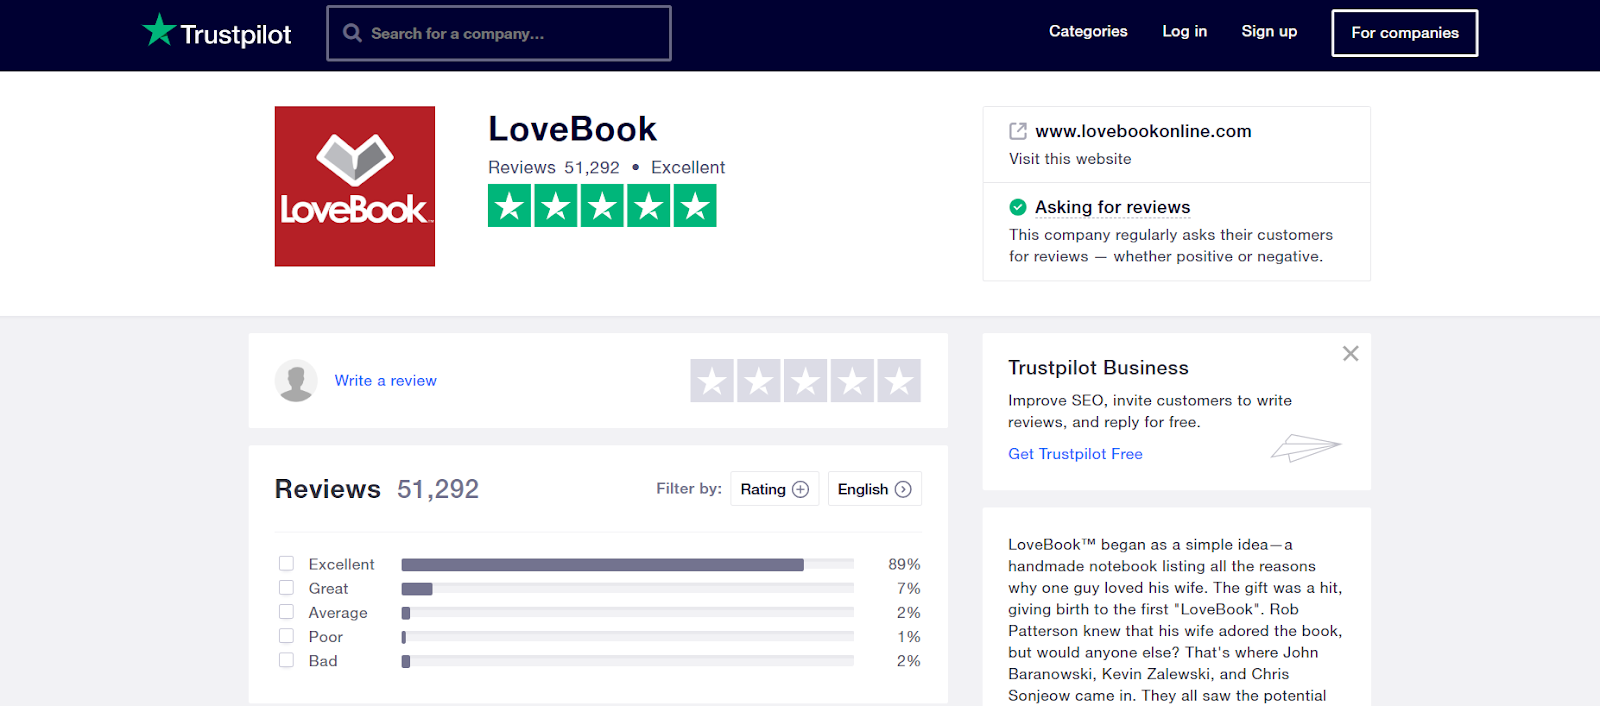 Companies can use Trustpilot reviews to carefully monitor customer sentiments around each product release, to make sure it goes smoothly and is well received by their customers.